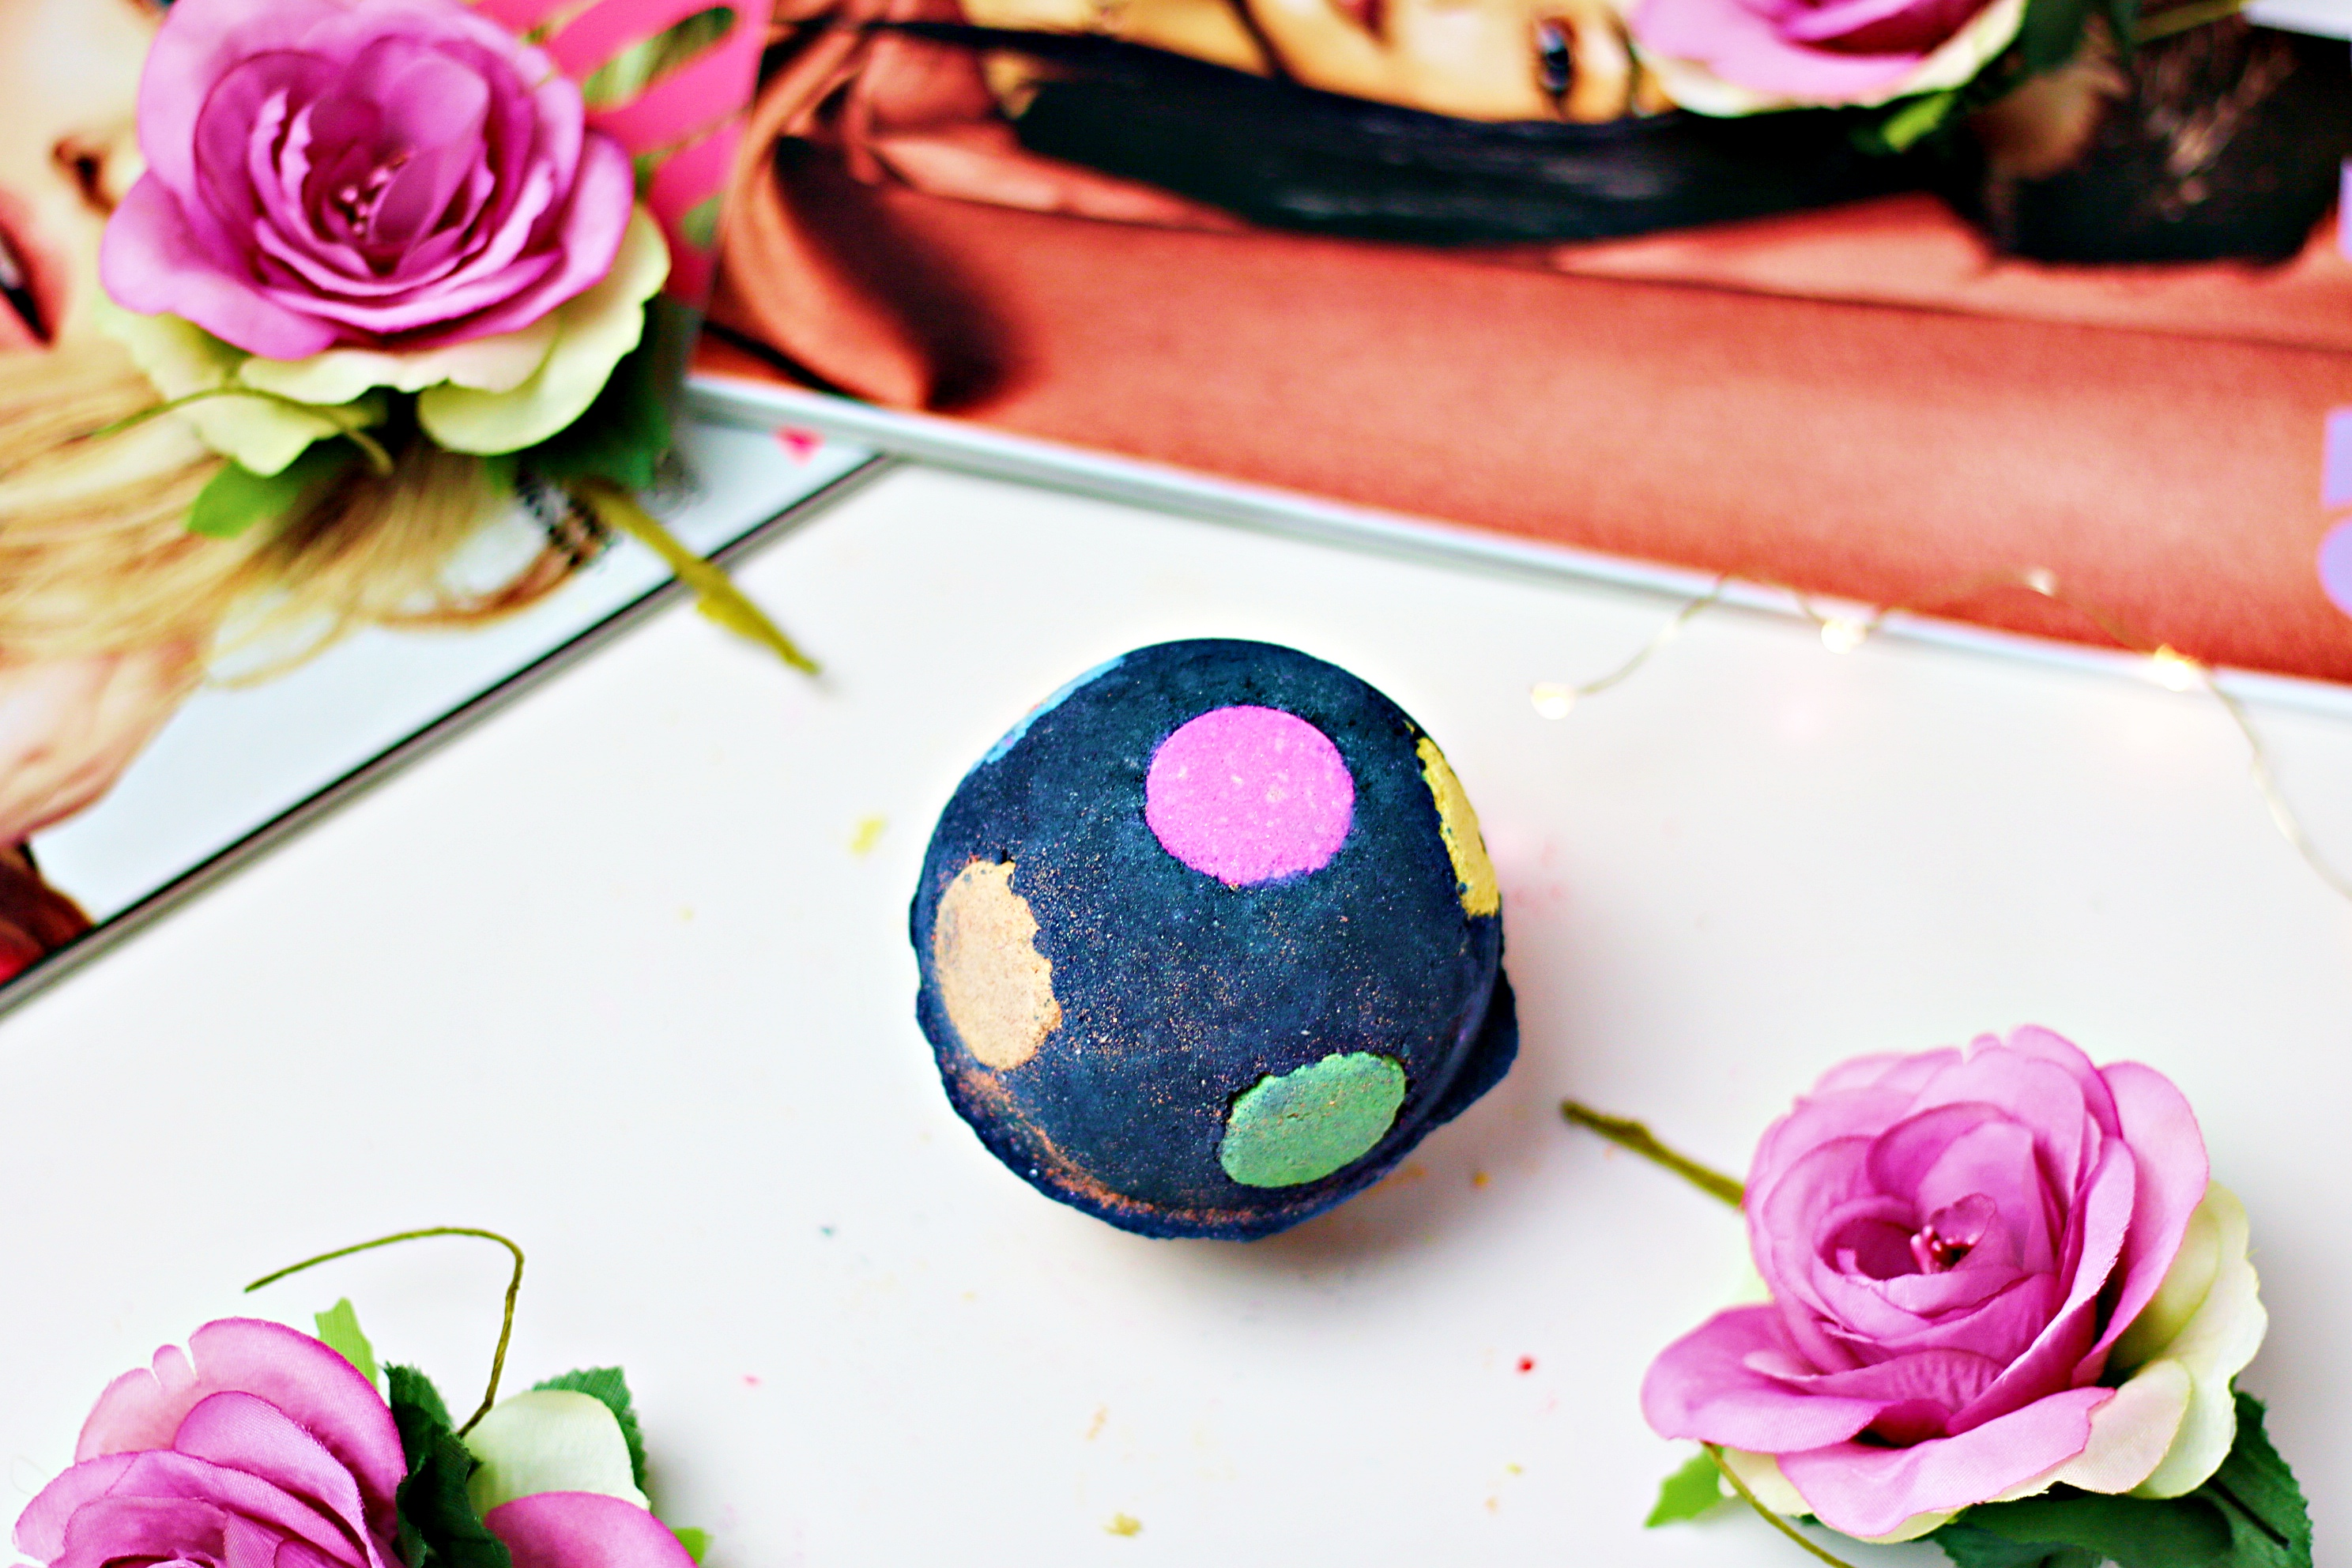 Lush Christmas 2019 The World's Smallest Disco Bath Bomb